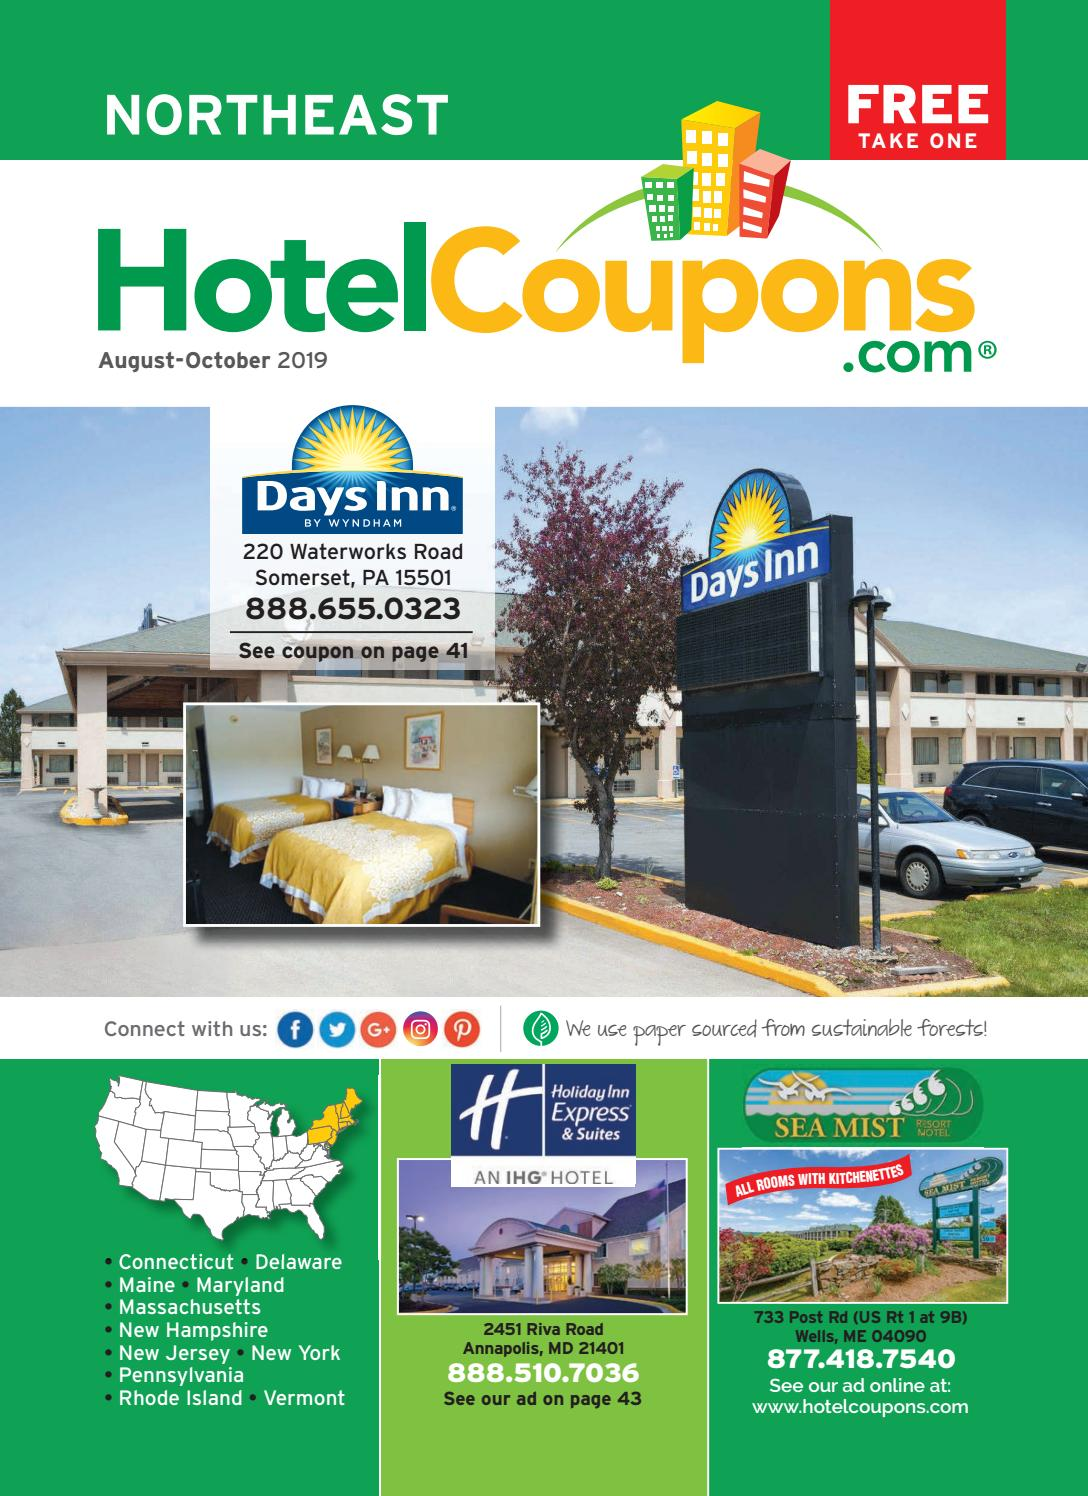 Northeast HotelCoupons com by HotelCoupons com - issuu